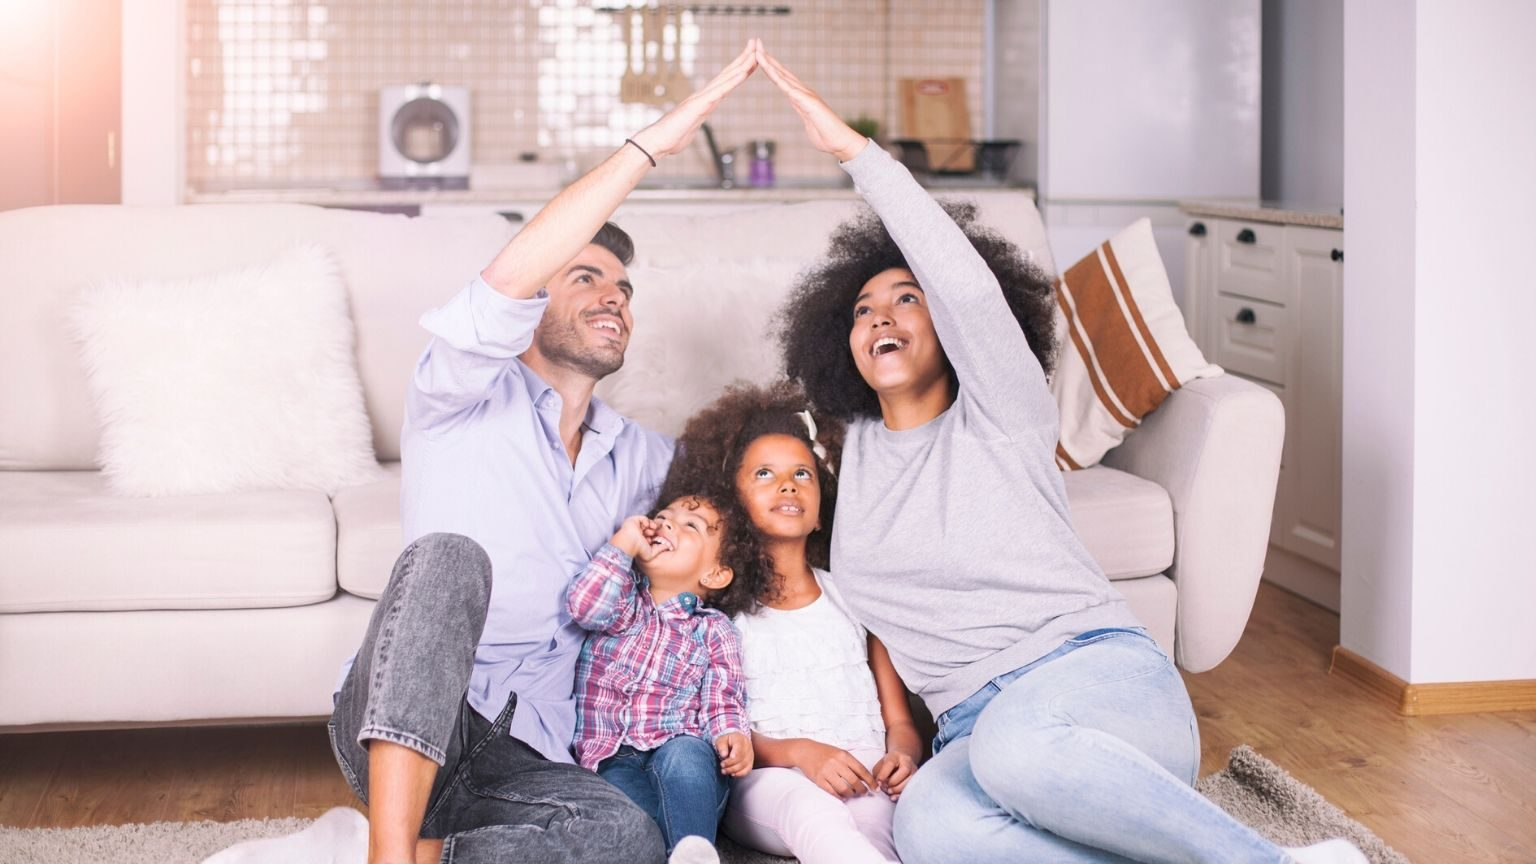 A family in their living room forming a house with their hands